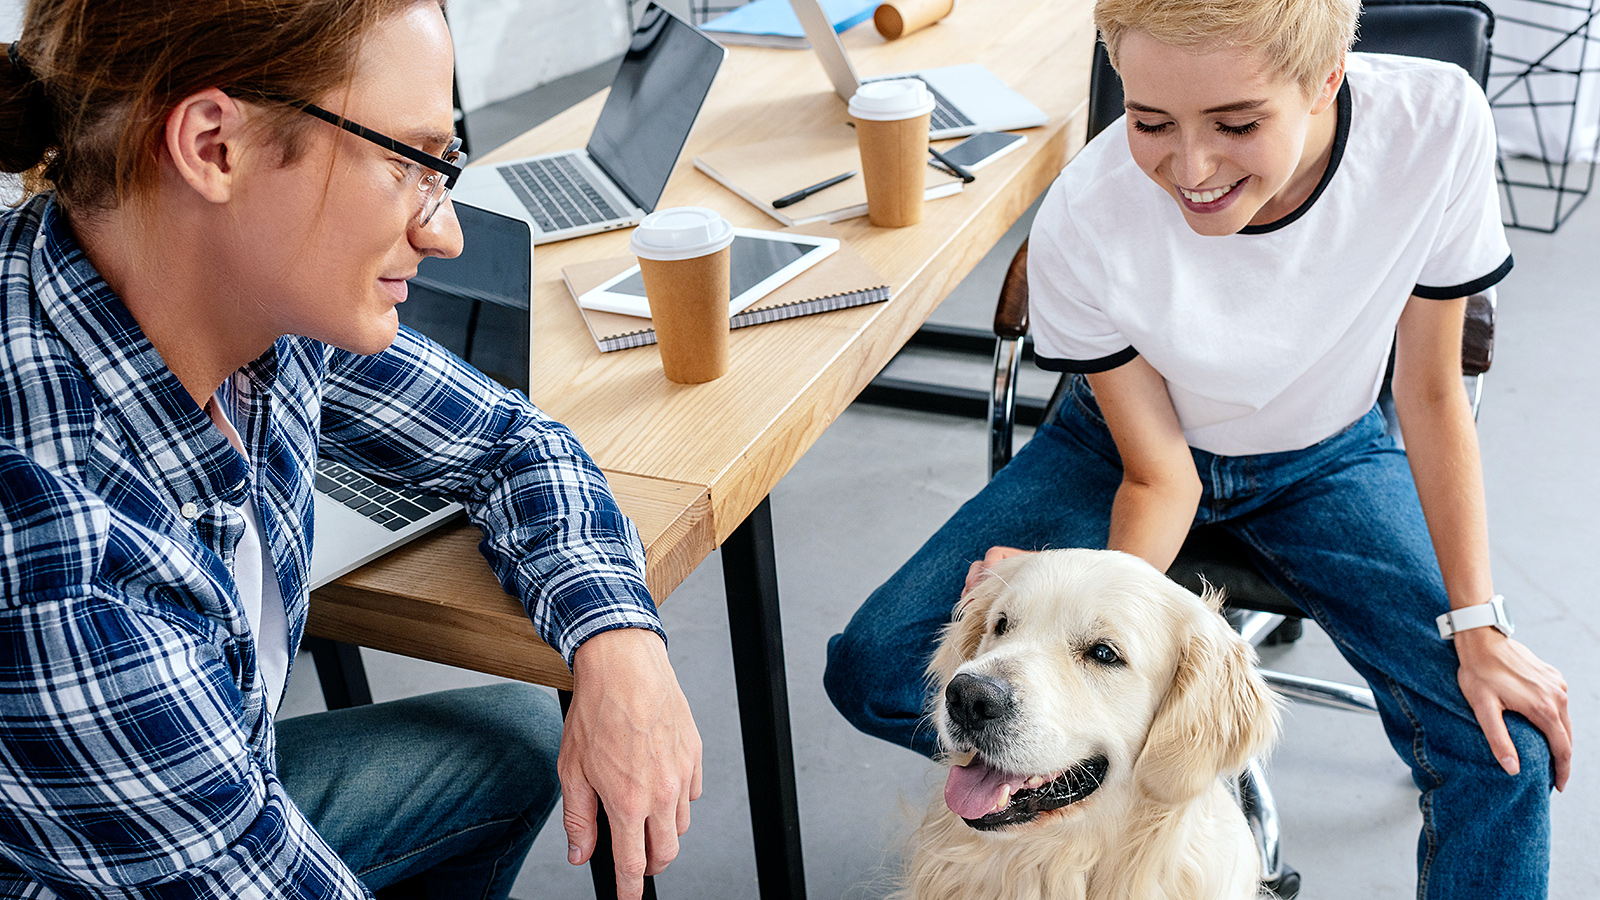 The argument for dogs at work